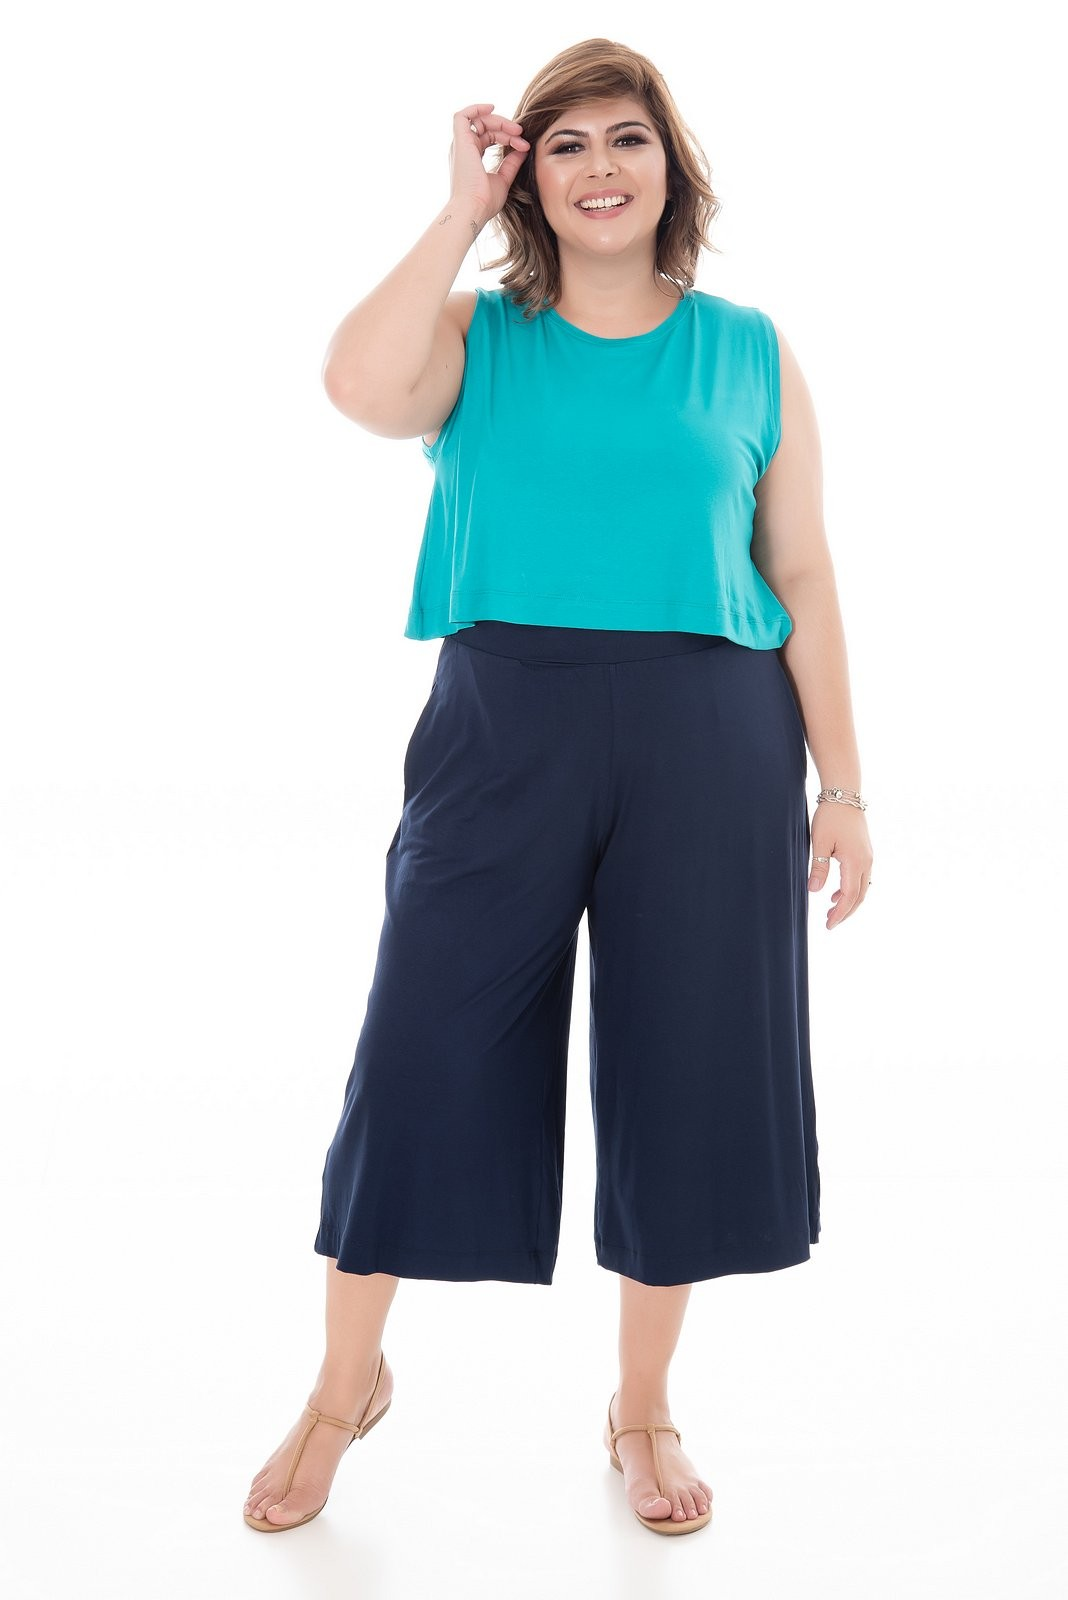 REGATA PLUS SIZE CROPPED JADE